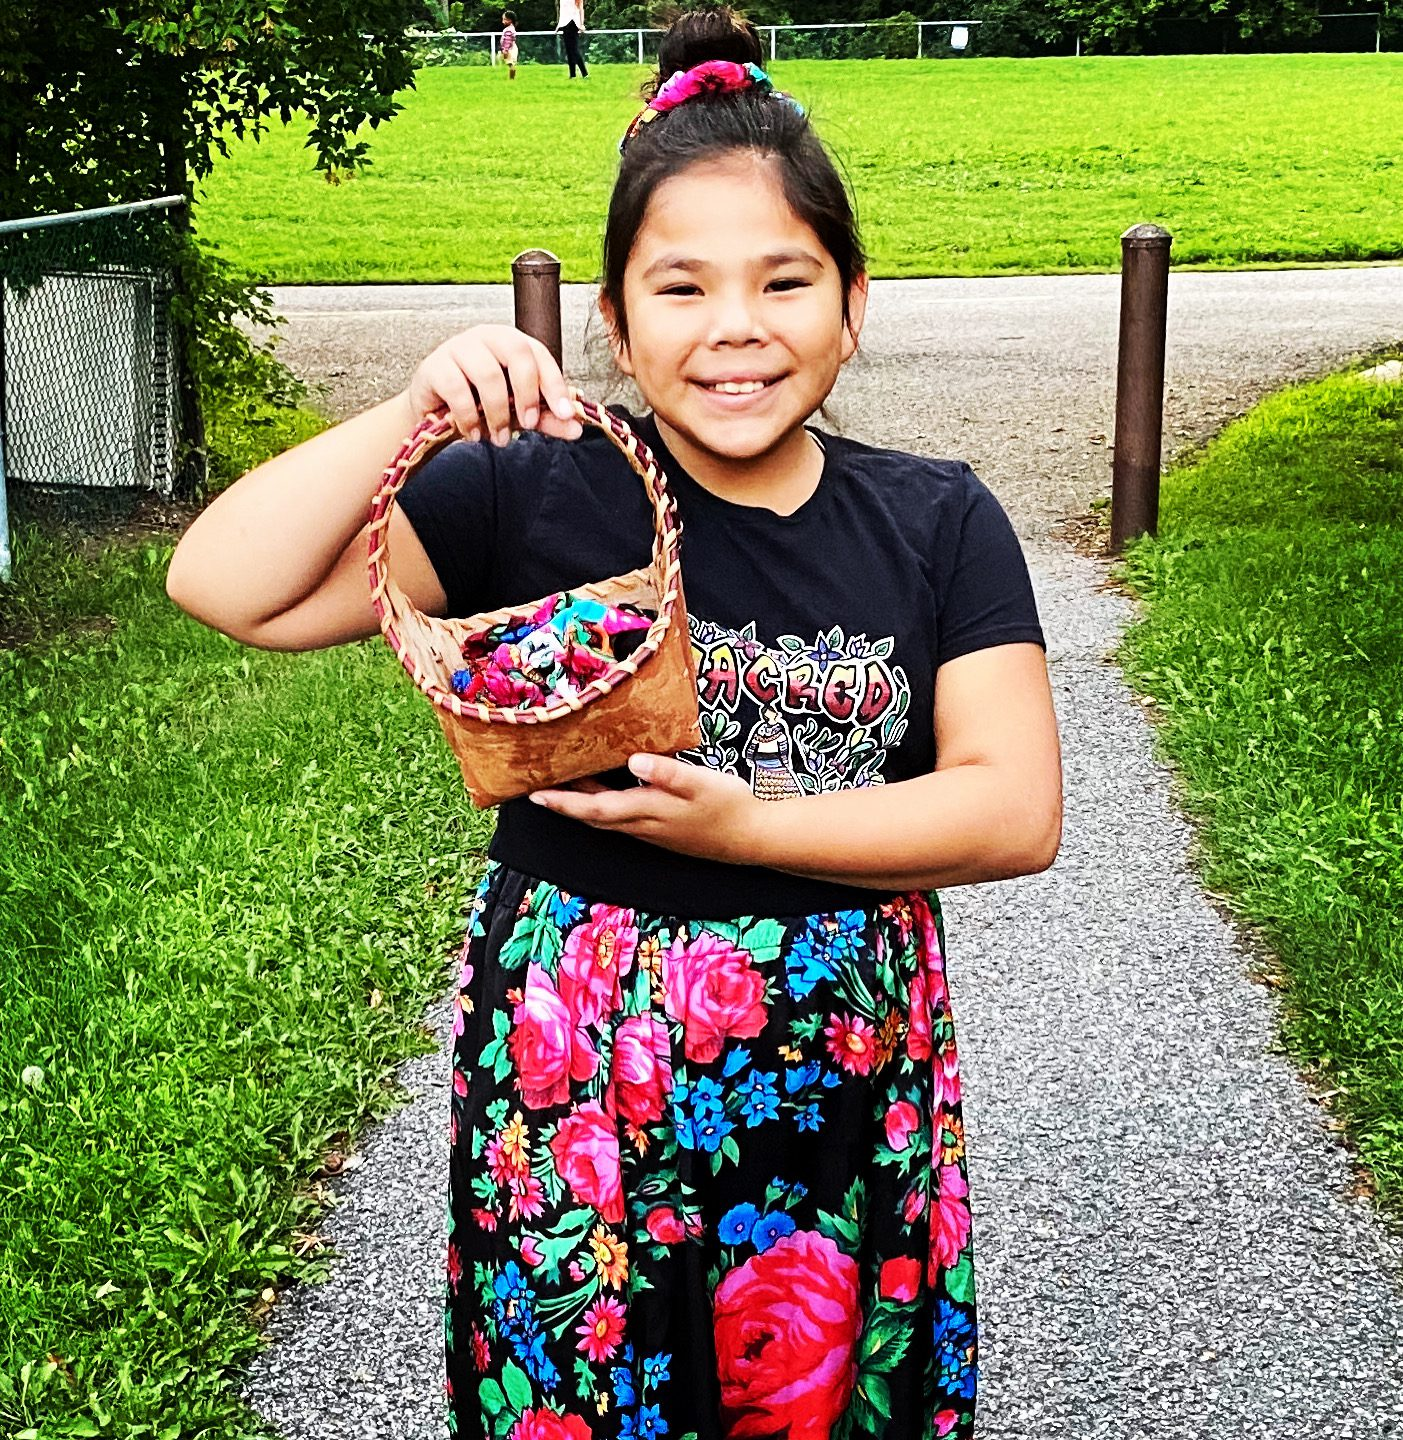 Mya Beaudry Founder and CEO of Kokom Scrunchies